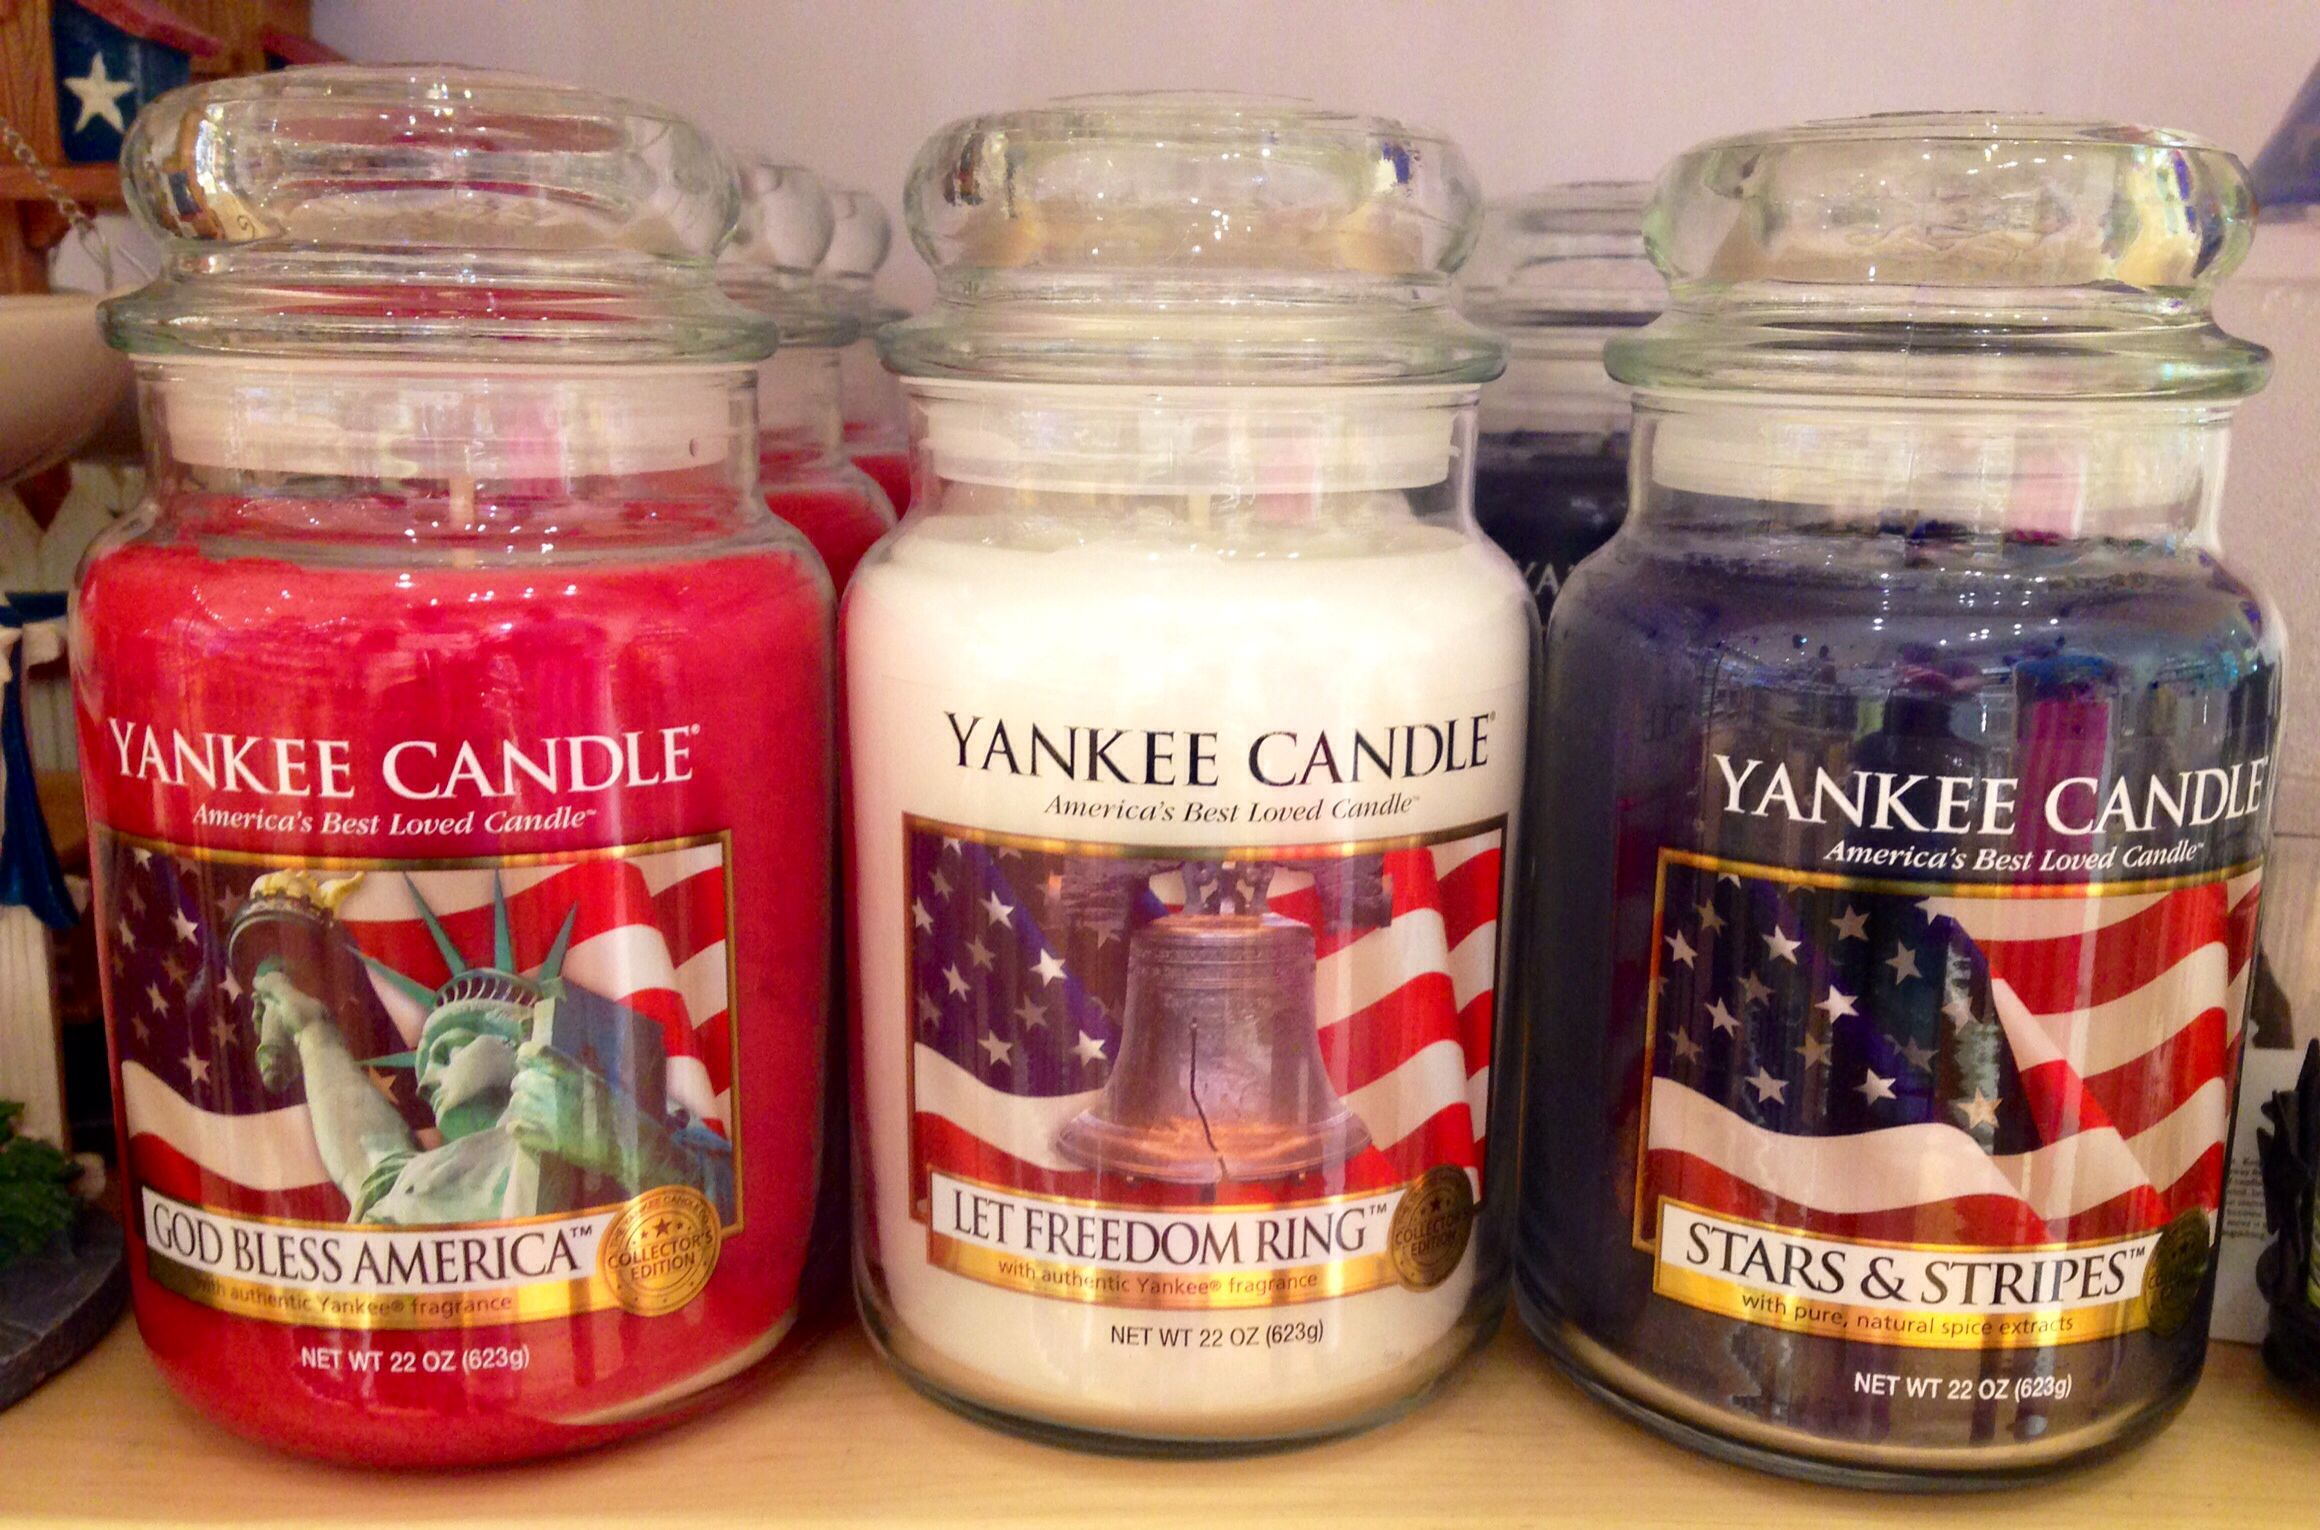 Patriotic Candles From Yankee Candle Patriotic Candles Yankee Candle Let Freedom Ring